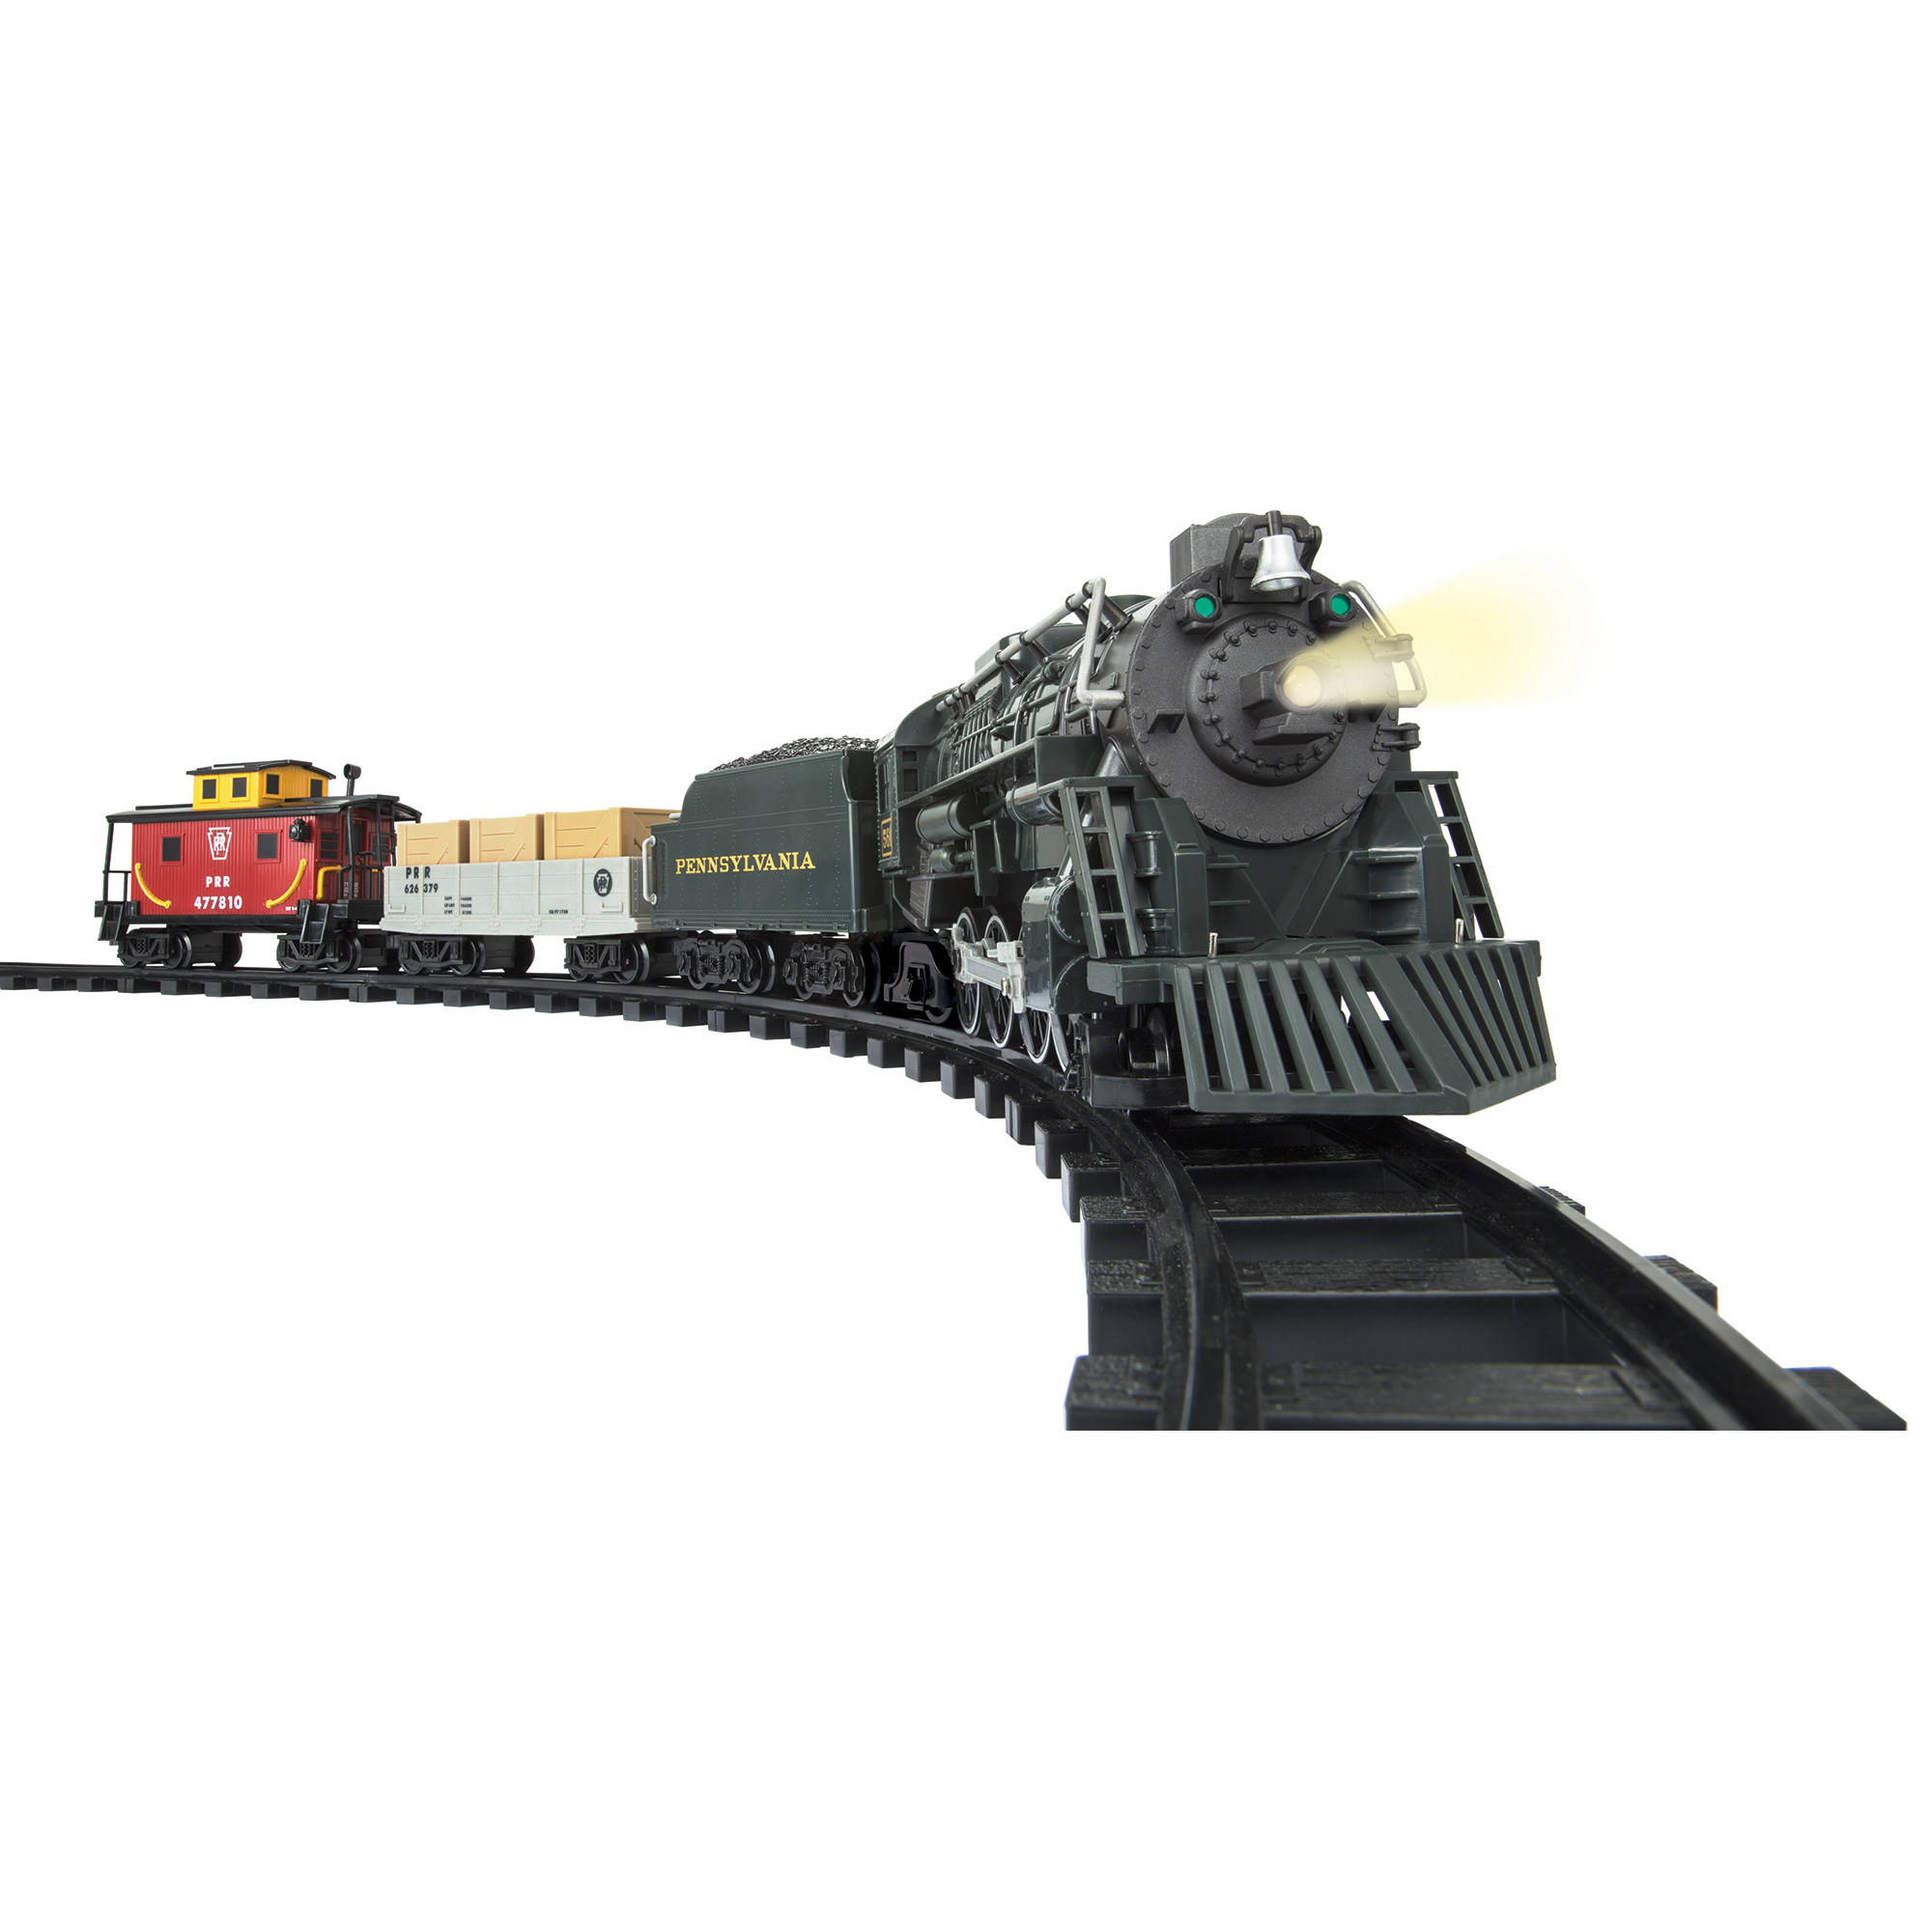 Lionel Trains PennSylvania Flyer Seasonal Freight Ready to Play Set by Lionel Trains